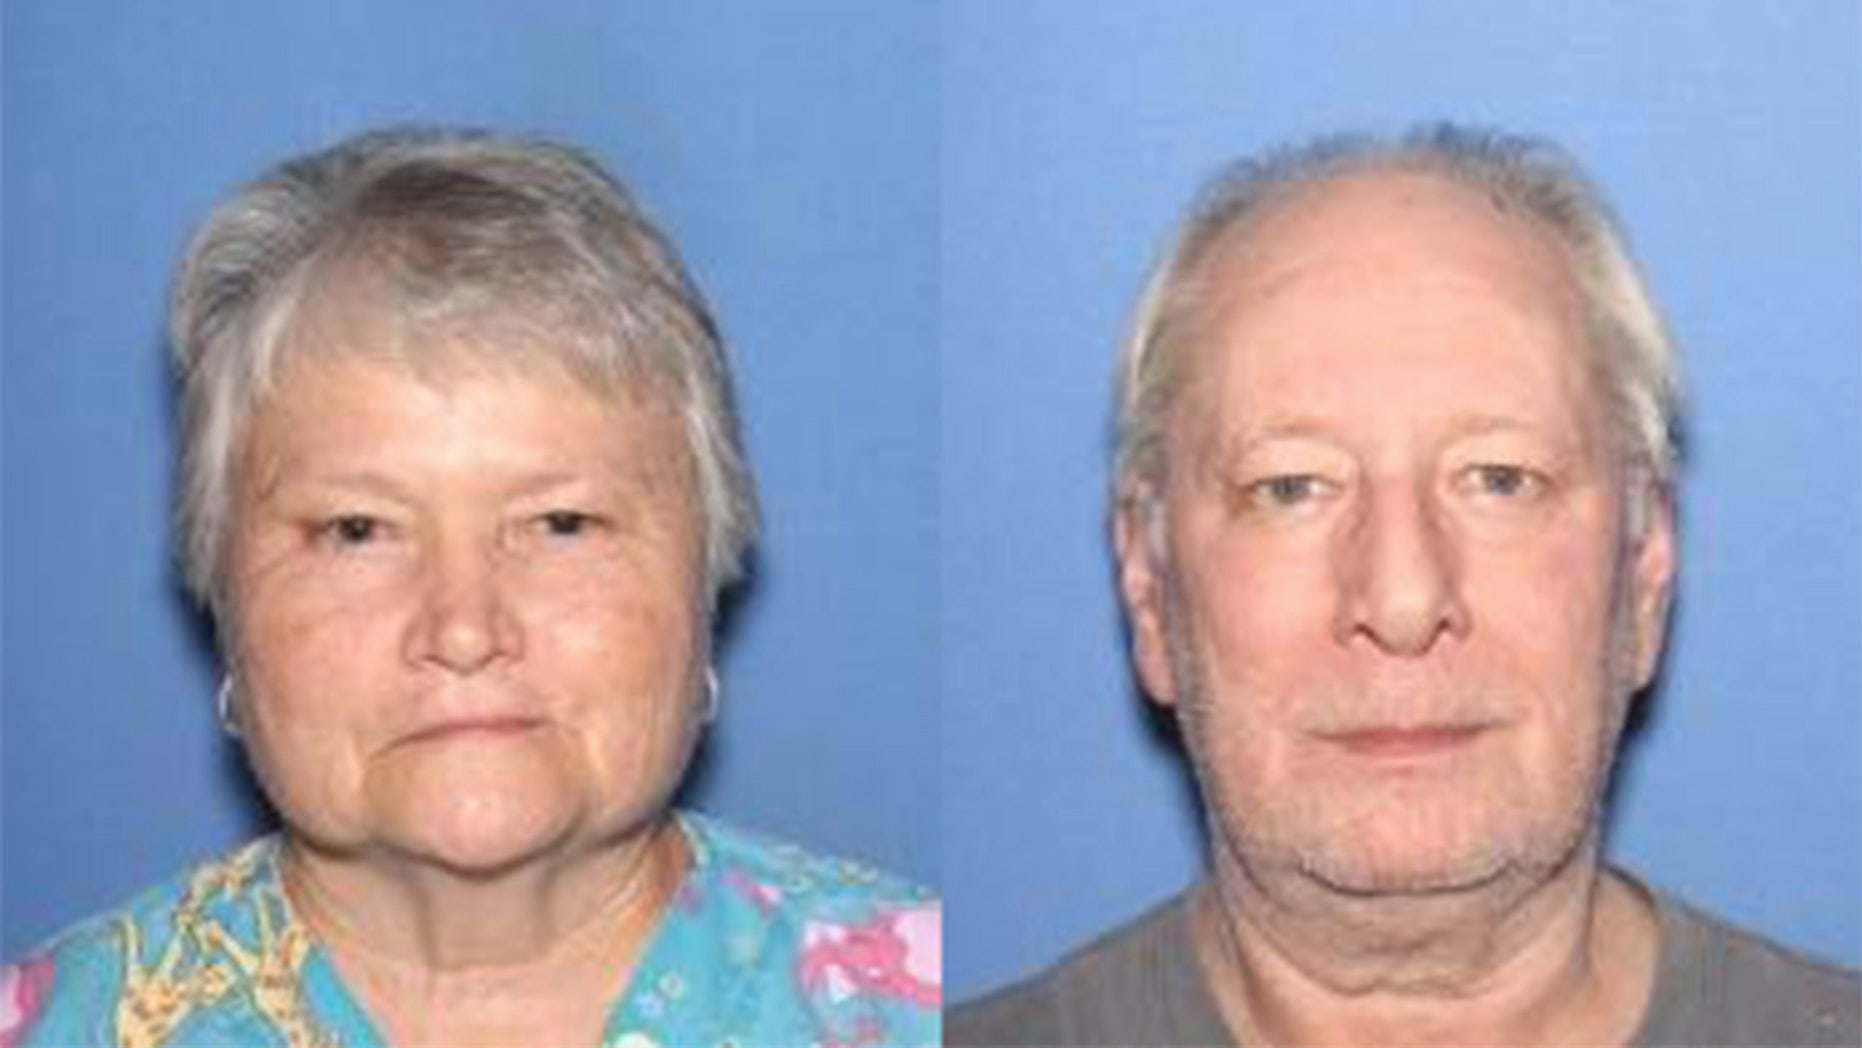 Patricia Hill, 69, shot and killed her husband Frank after he bought pornography, according to police.